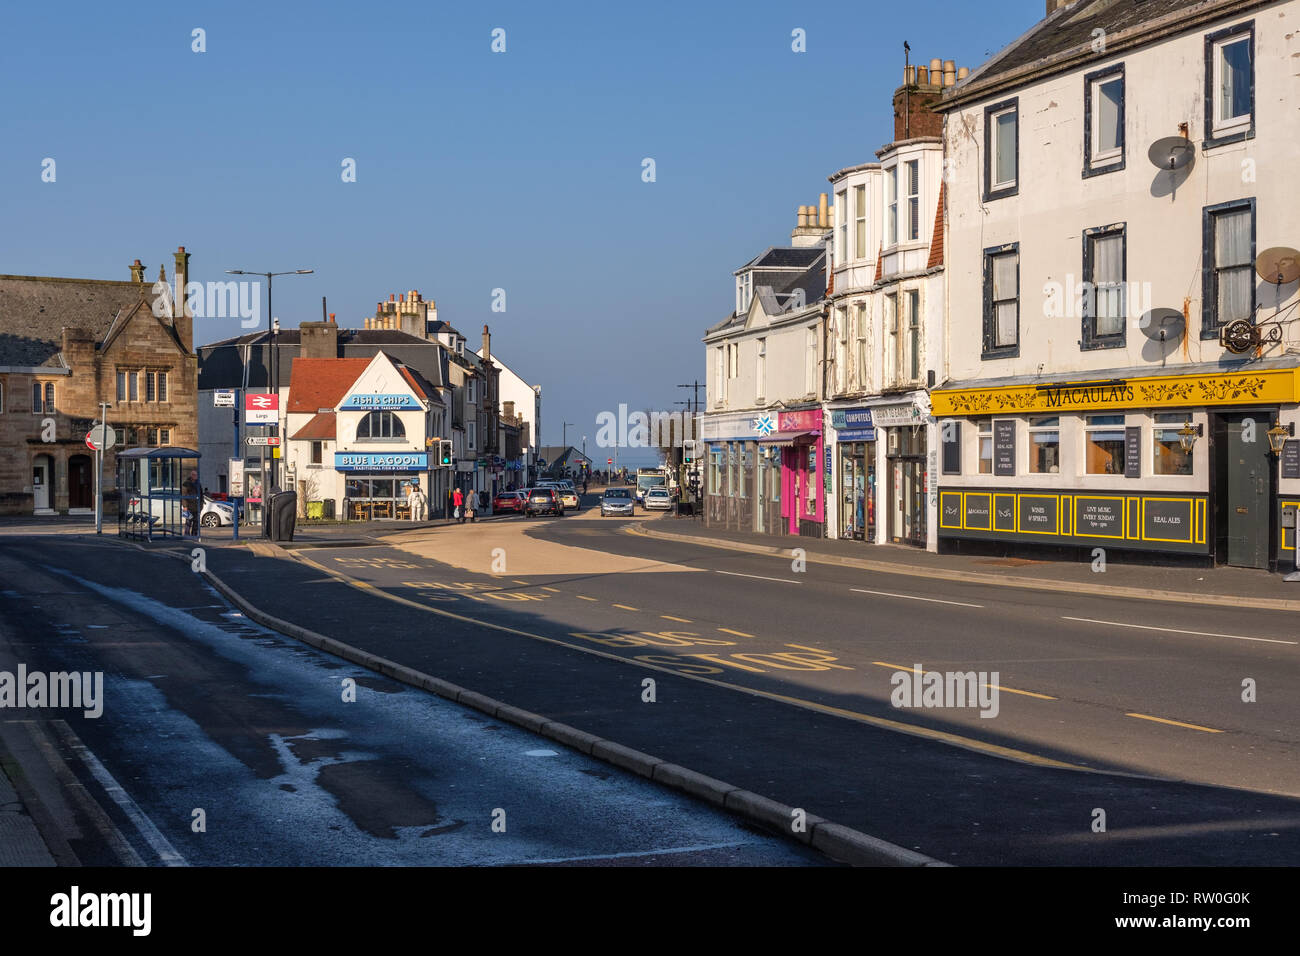 Largs, Scotland, UK - February 27, 2019: Unusually warm February weather for Largs Main Street on the West coast of Scotland with bright blue sky and  - Stock Image